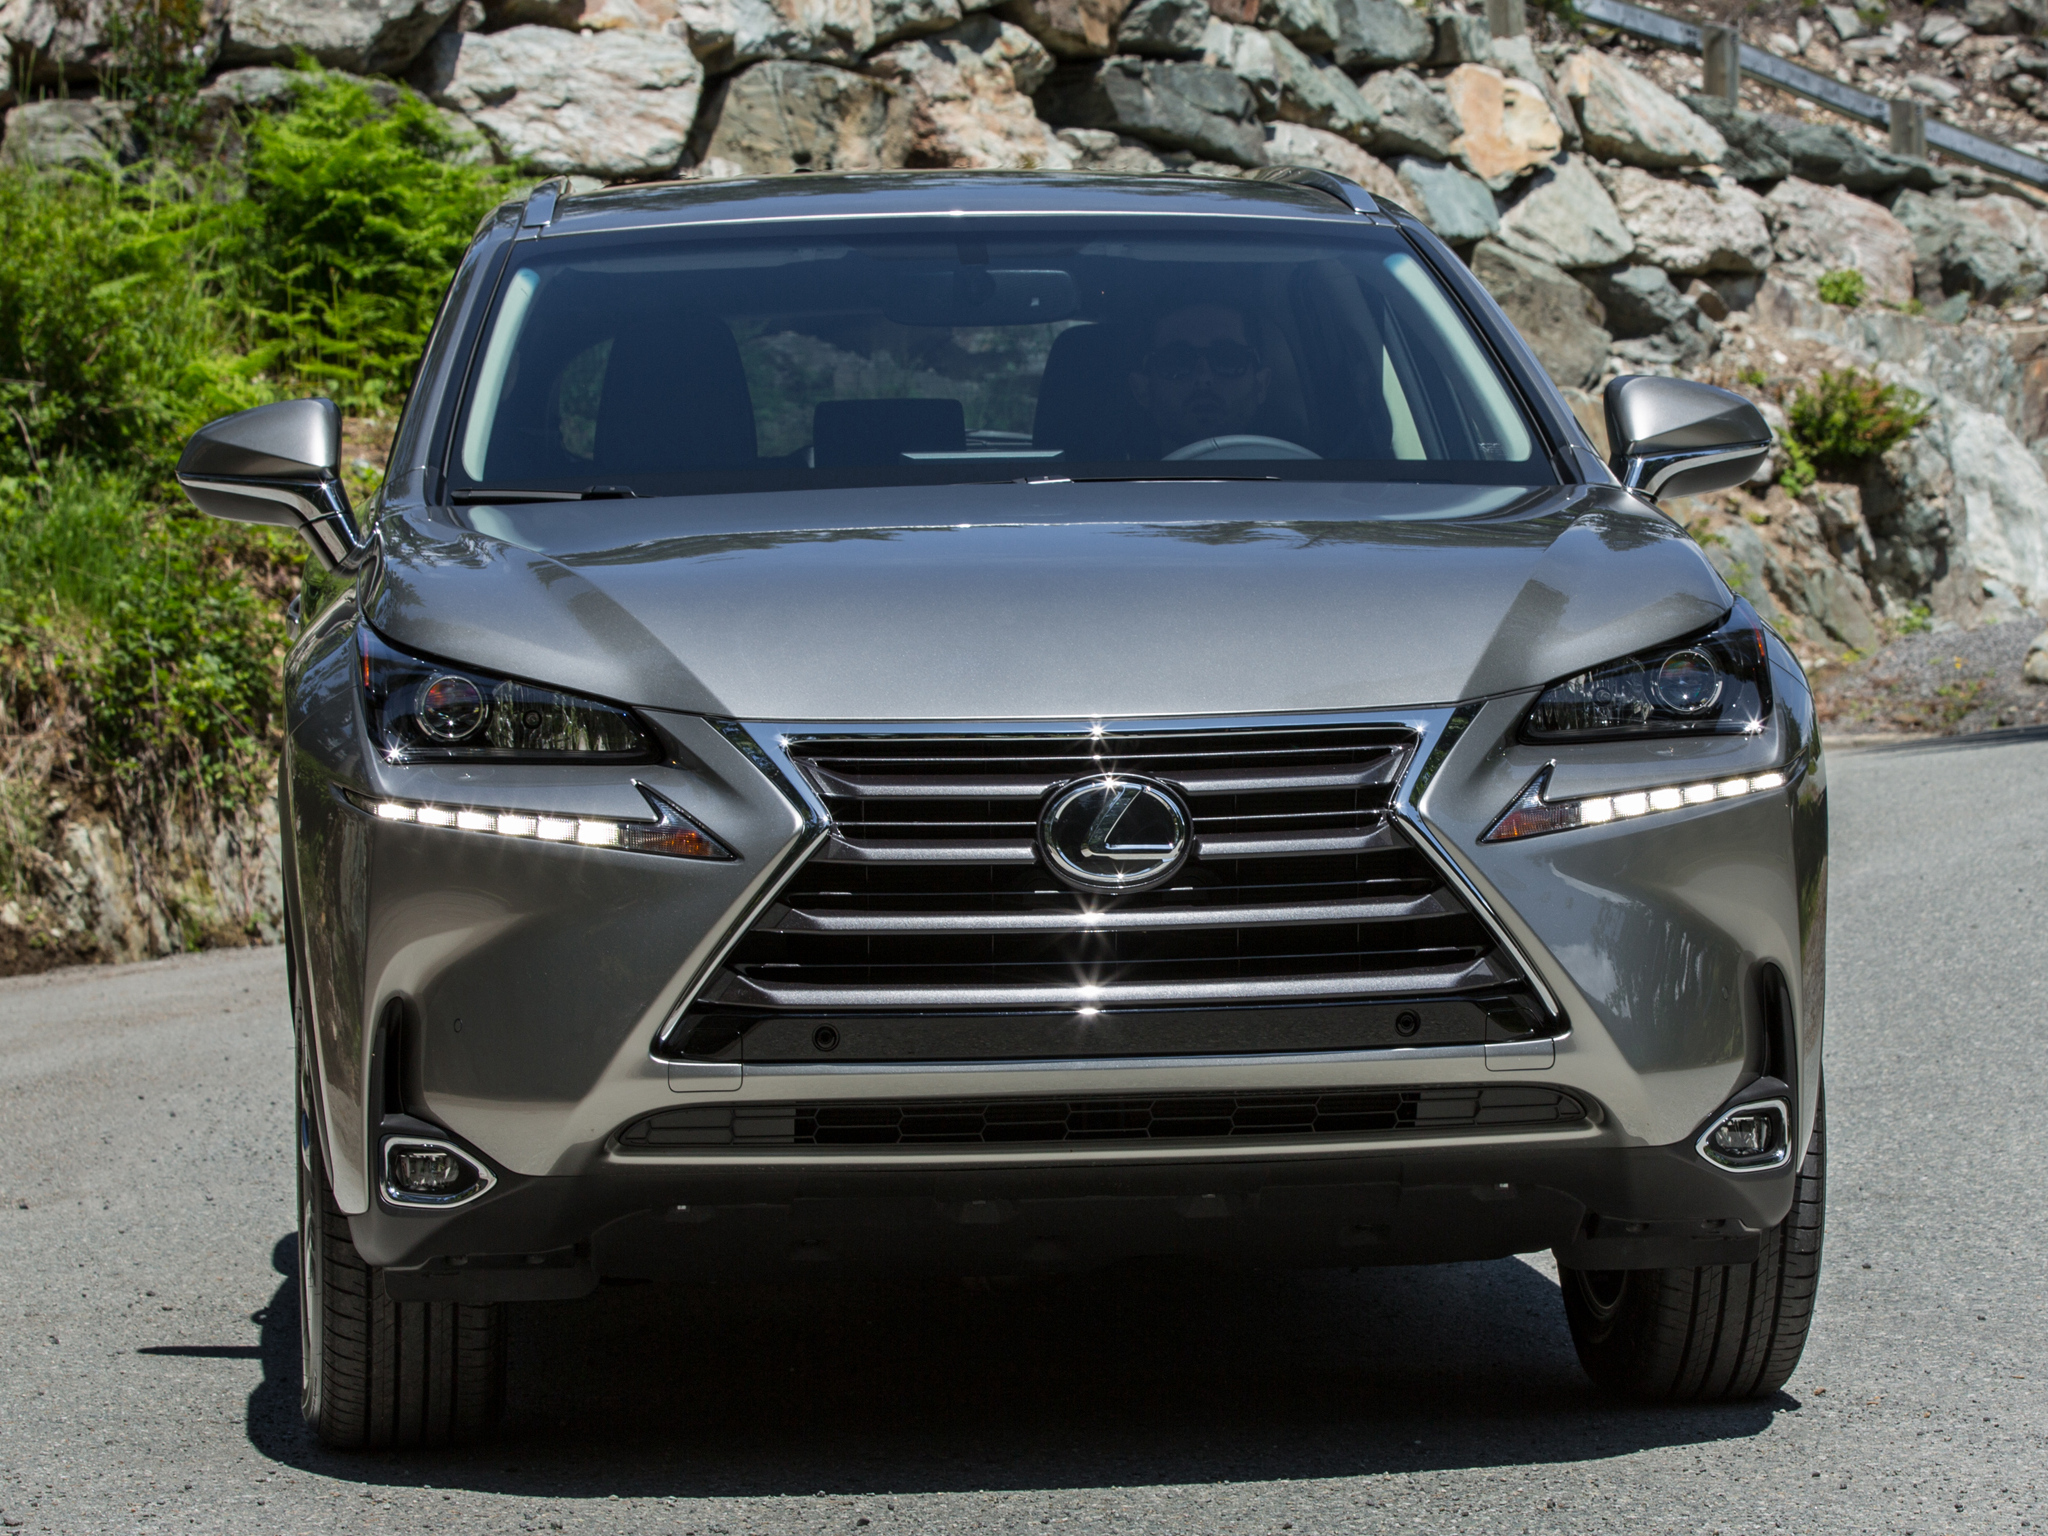 2015 lexus nx is good but could be better says consumer reports autoevolution. Black Bedroom Furniture Sets. Home Design Ideas